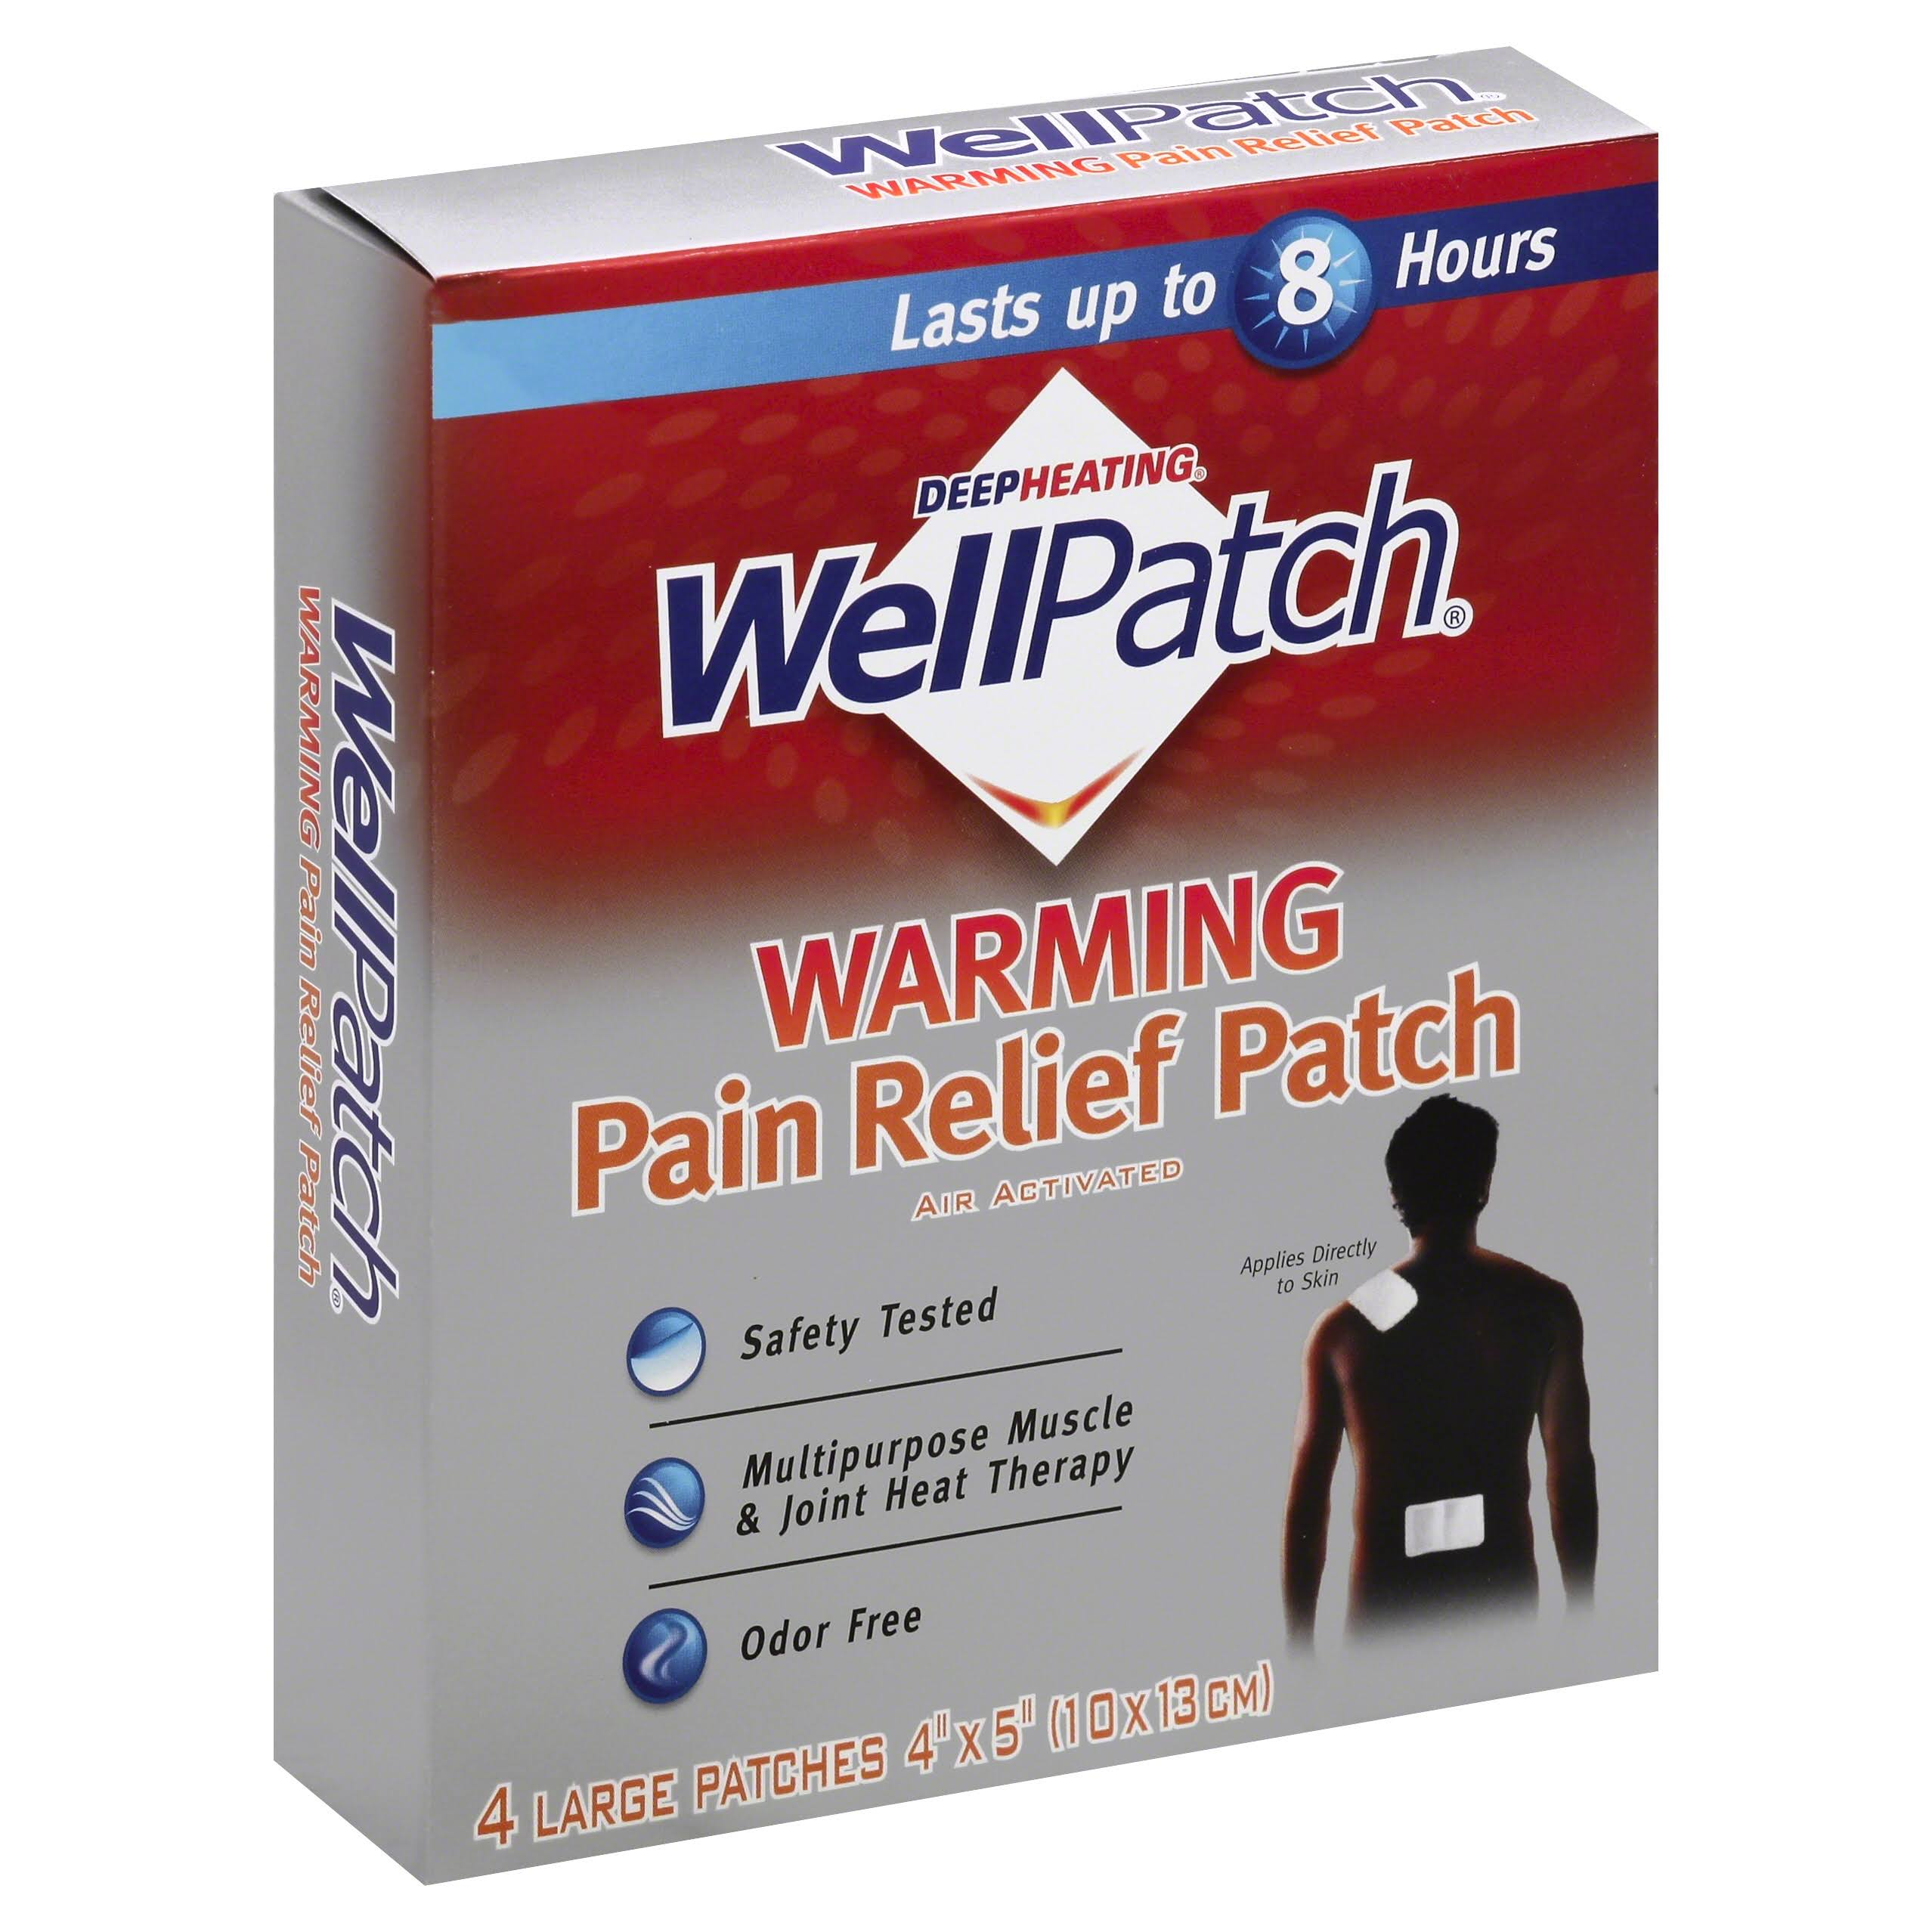 Wellpatch Warming Pain Relief Patch - 4 Large Patches